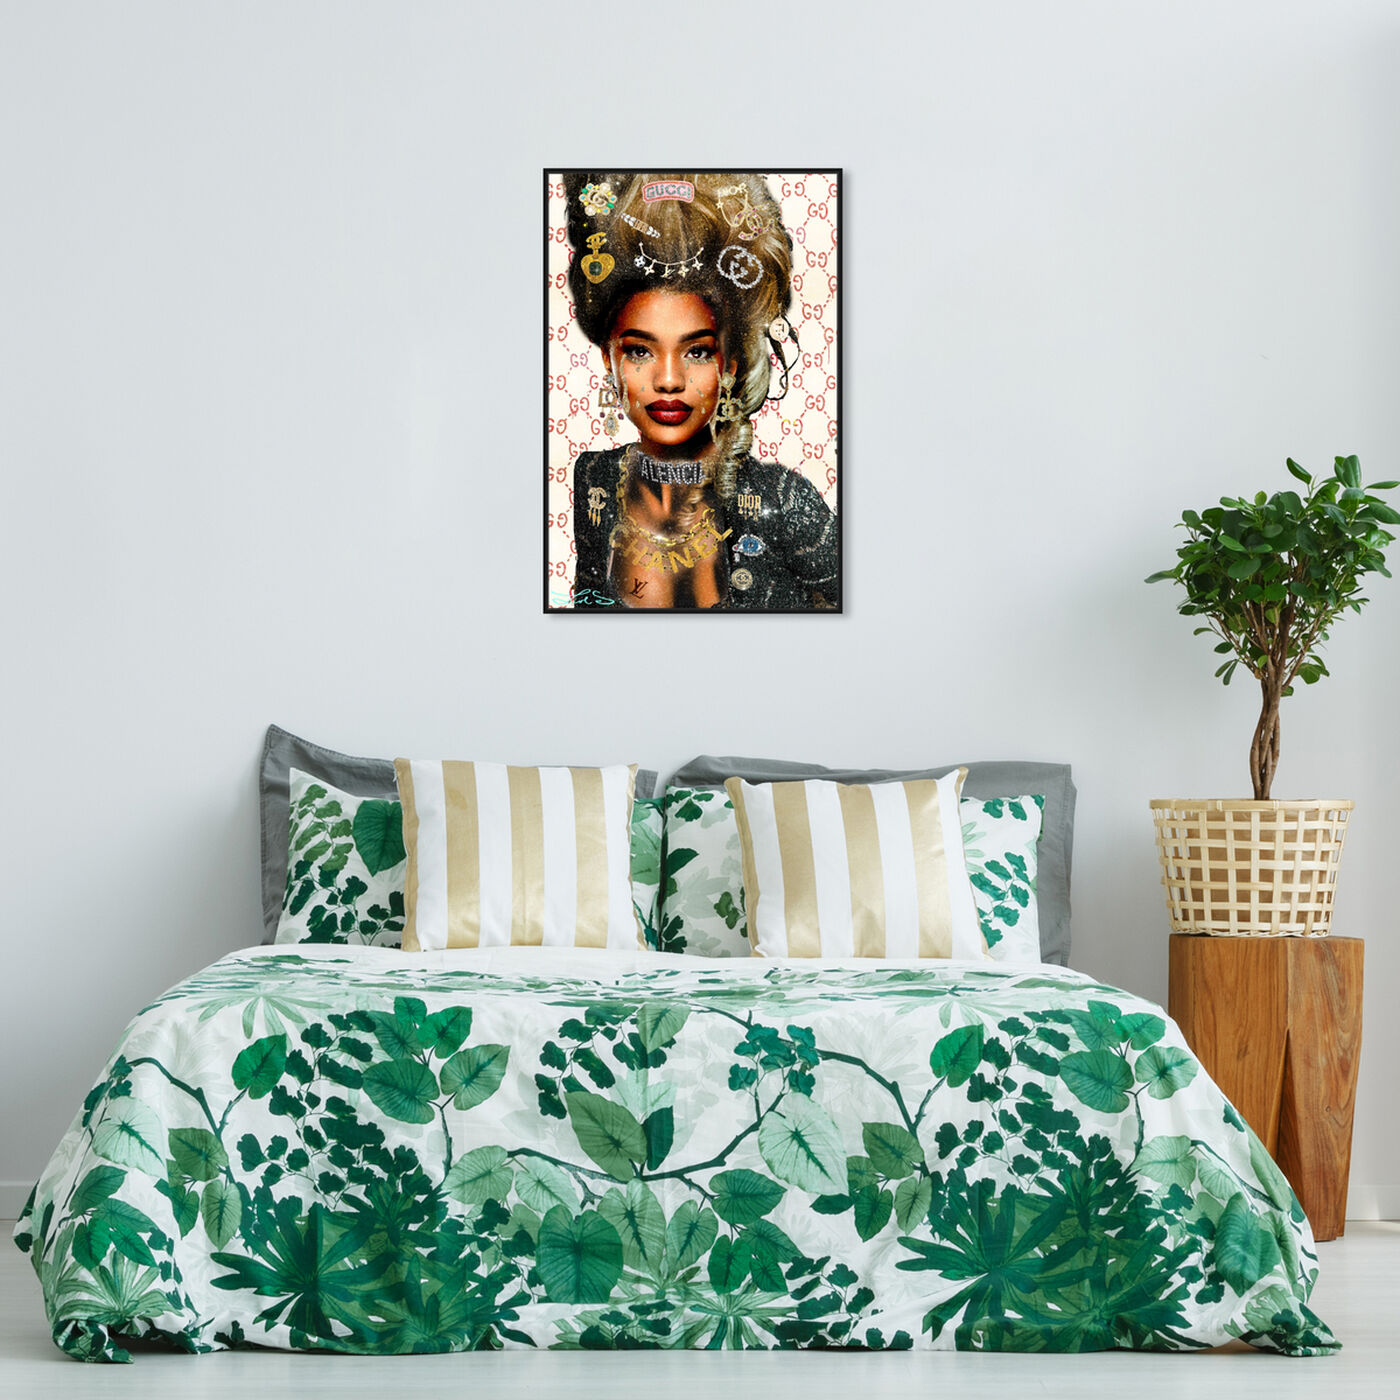 Hanging view of Real Queen of Everything featuring fashion and glam and fashion lifestyle art.